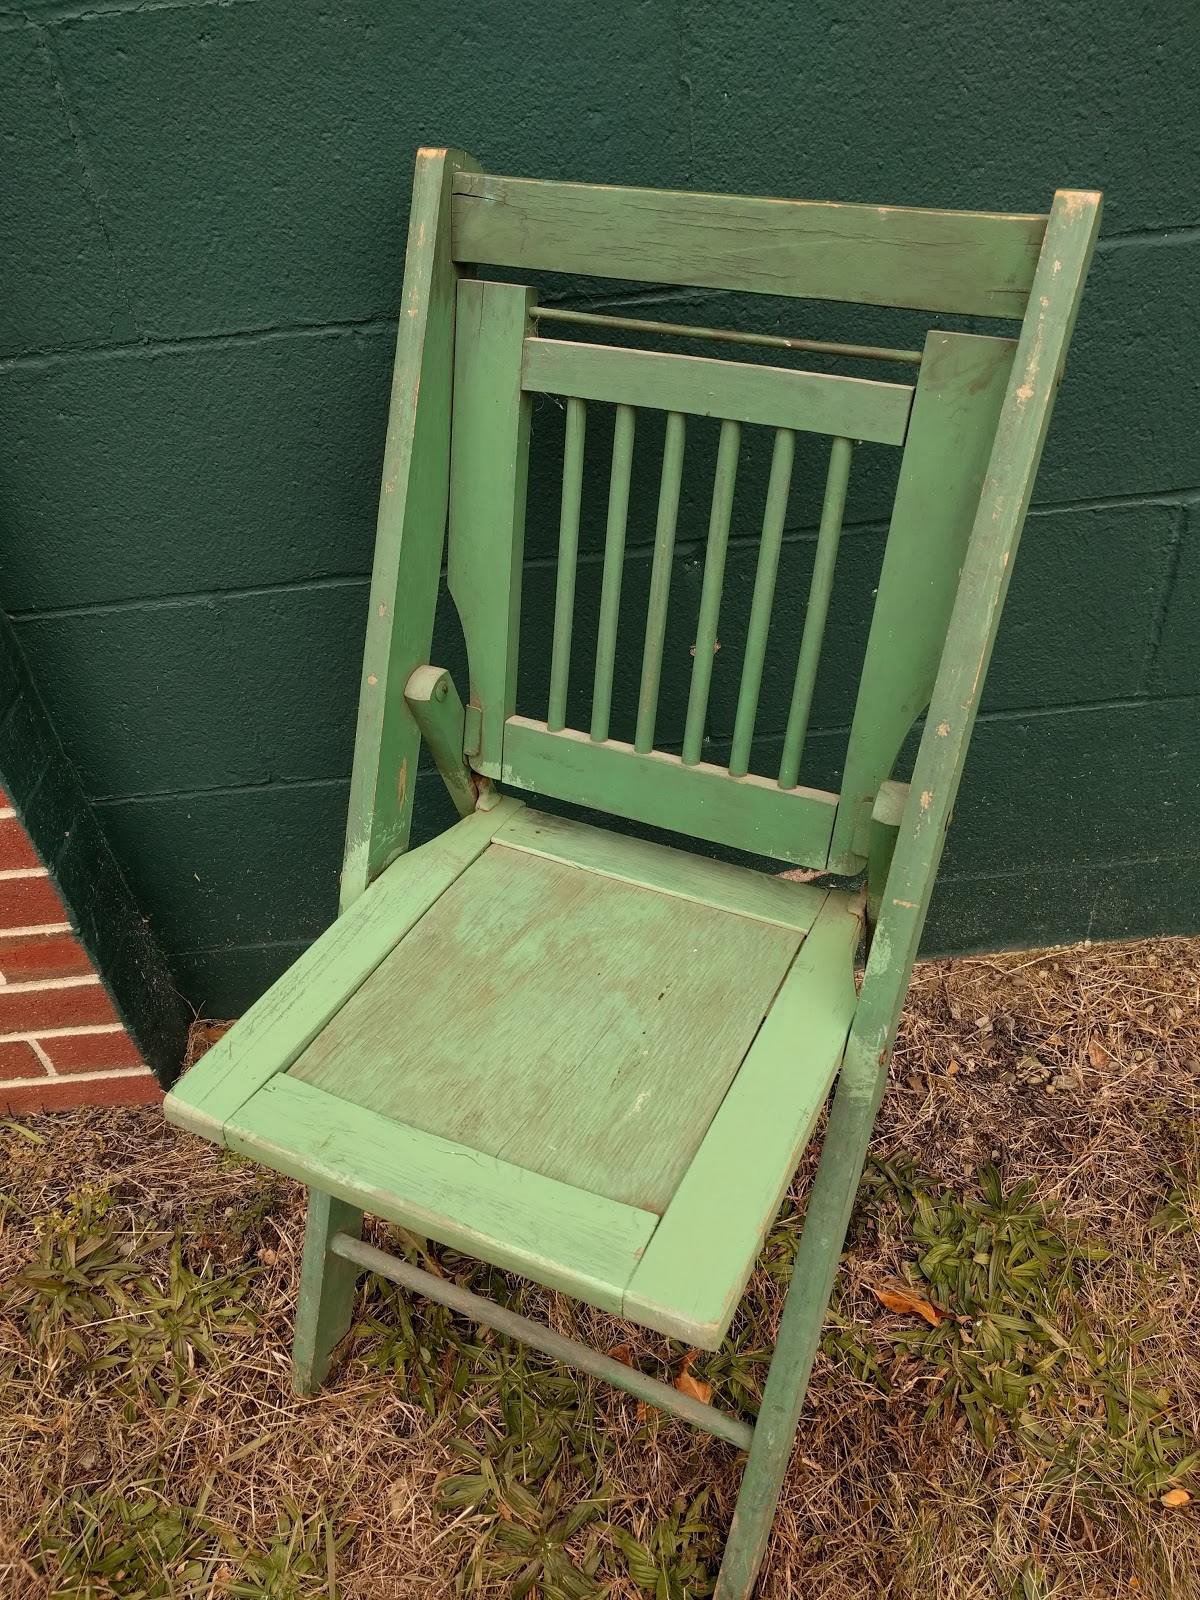 Yankees Folding Chair Turquoise Leather And Ottoman Things I Have Seen Look What Saw At The Green Center